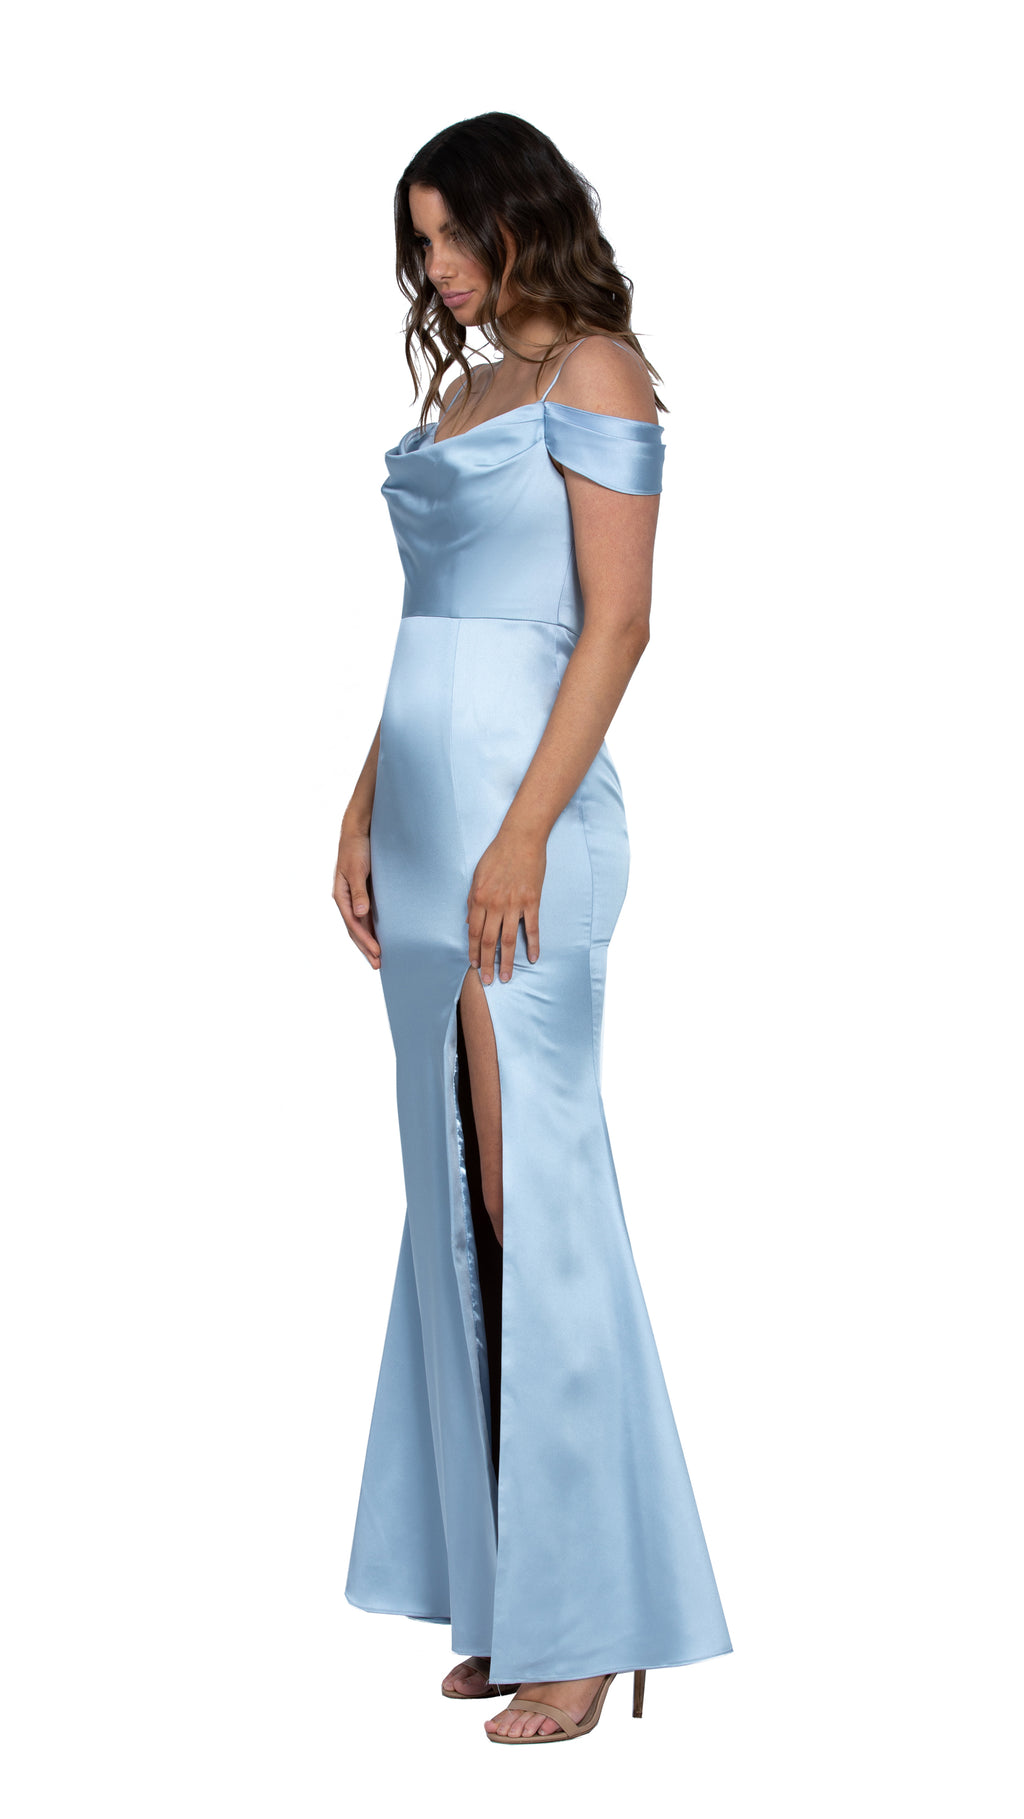 Christy Cowl Off Shoulder Gown in Sky Blue SIDE